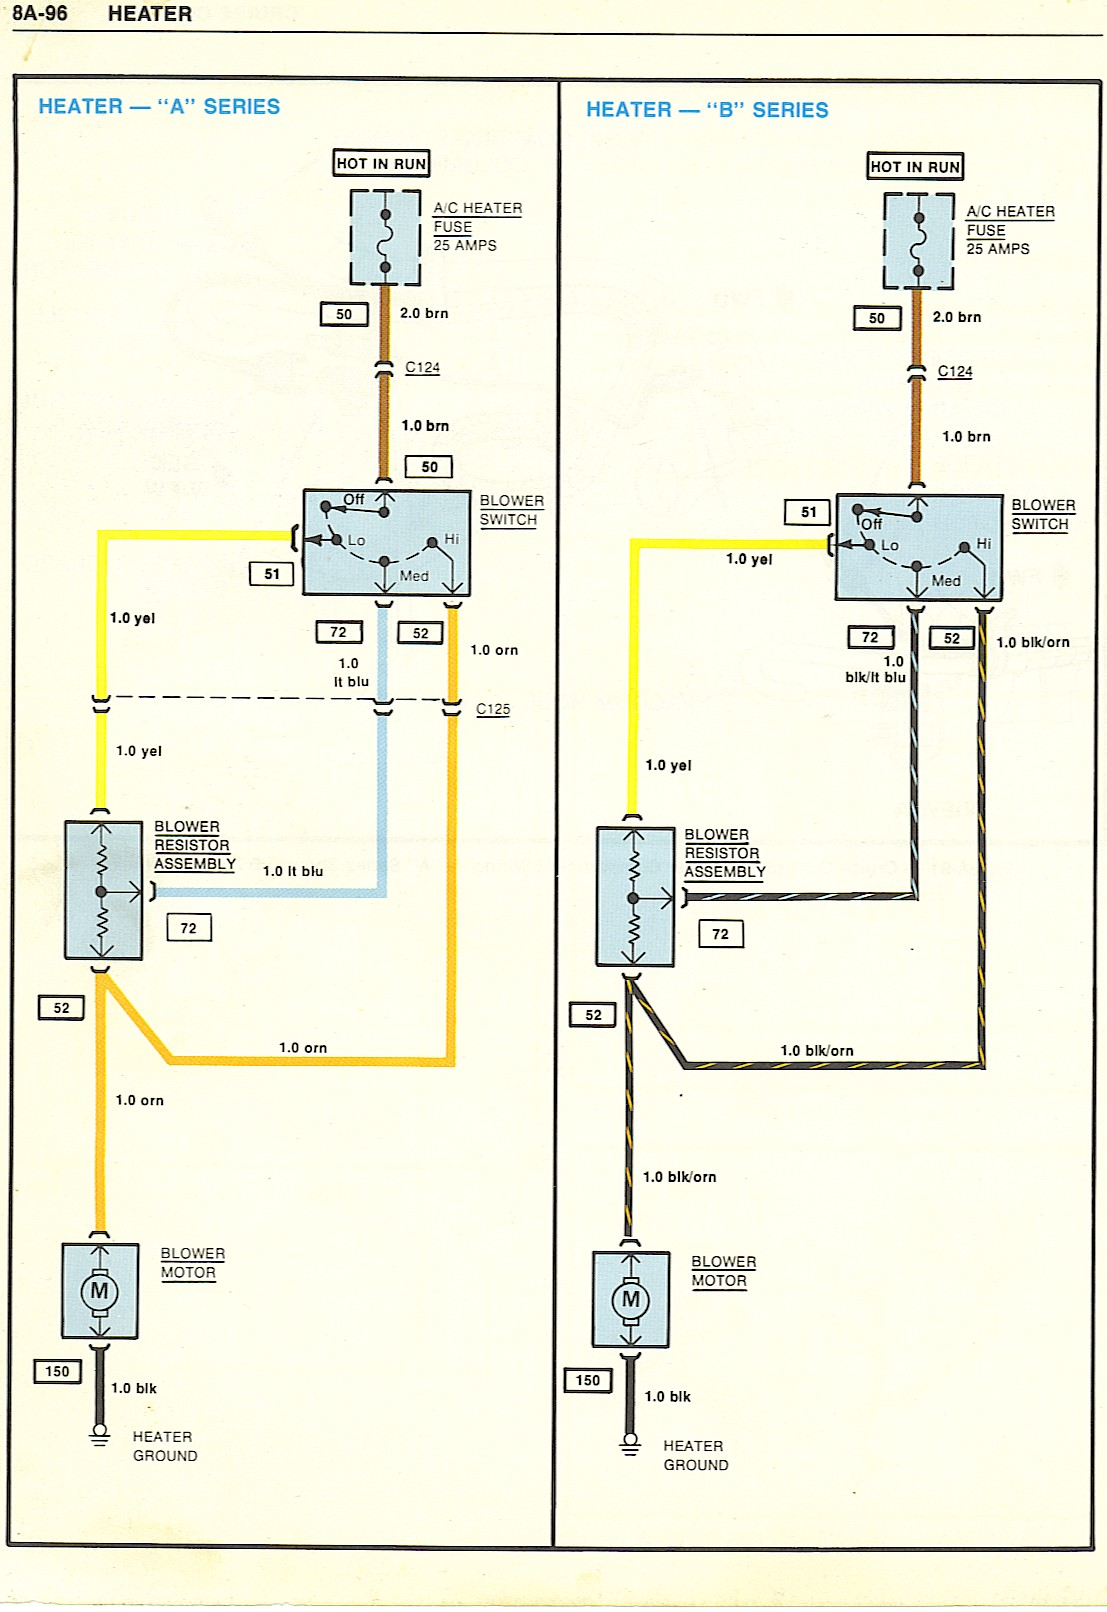 hight resolution of gm heater wiring wiring diagram repair guides gm heater wiring harness diagram